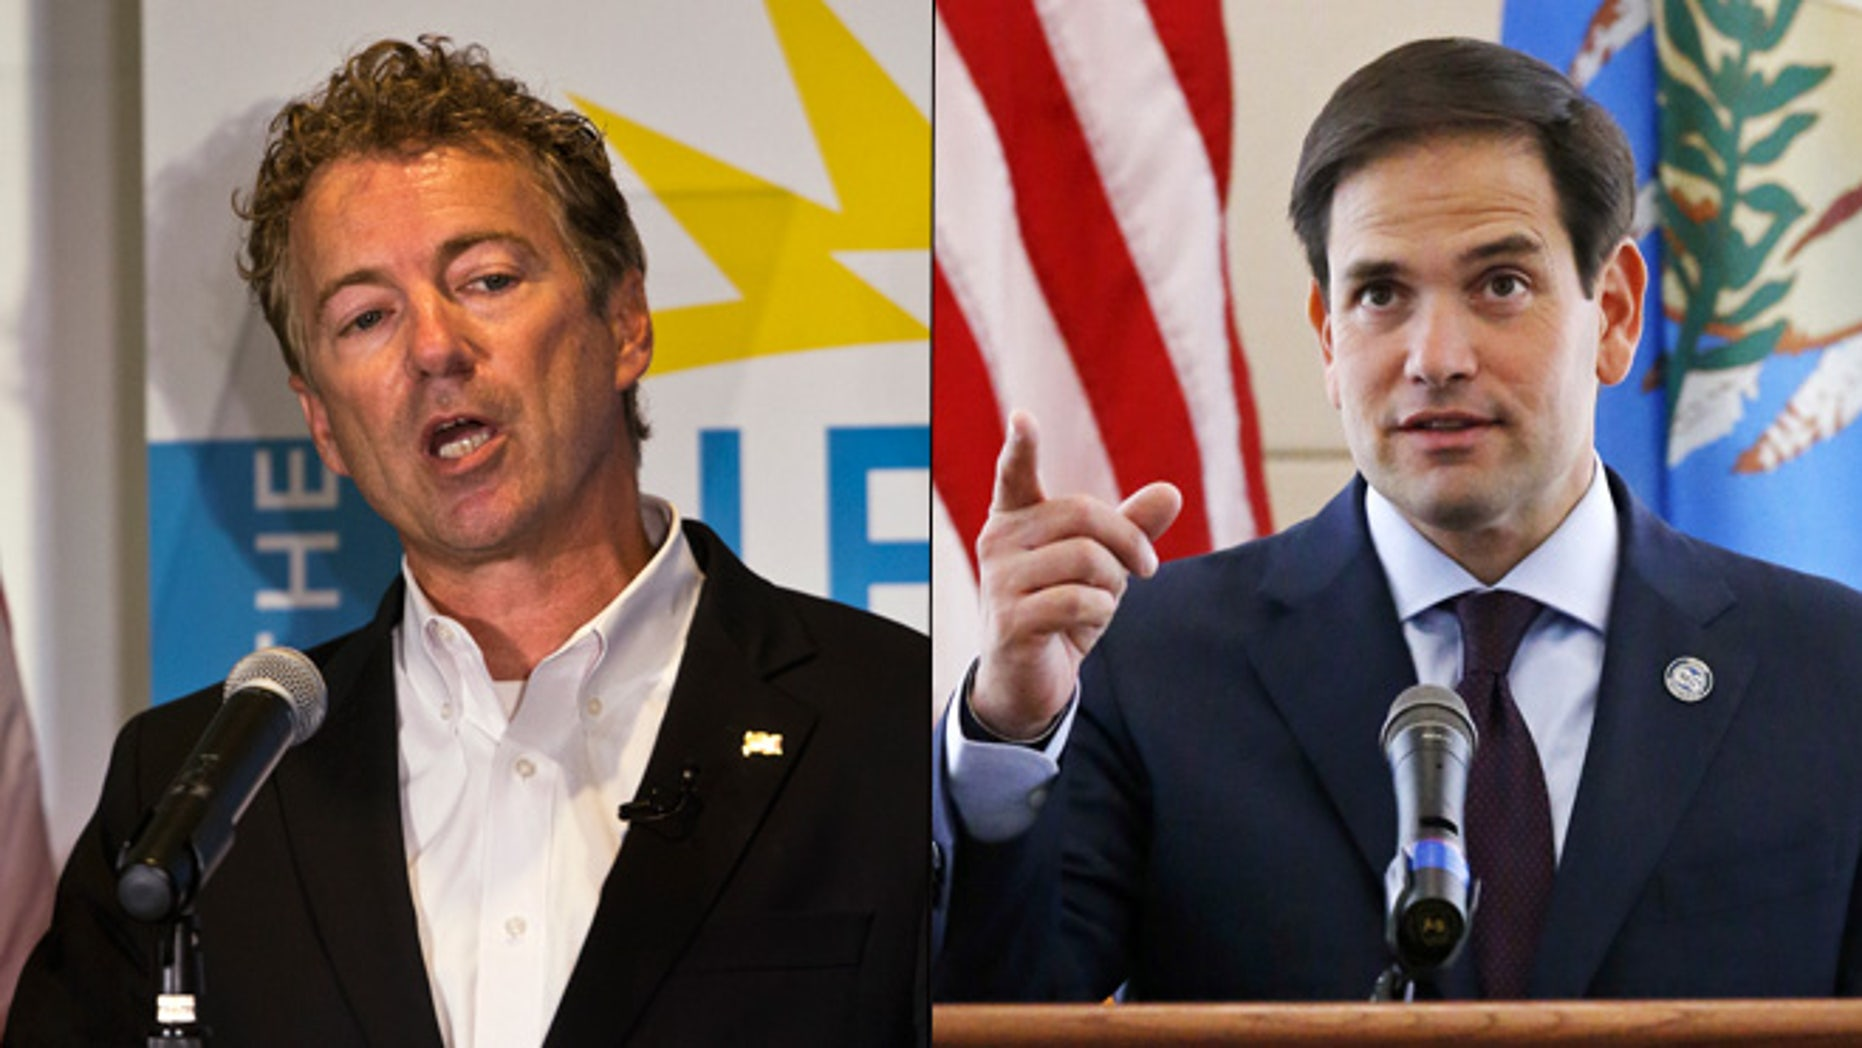 At left, Kentucky Sen. Rand Paul; at right, Florida Sen. Marco Rubio.